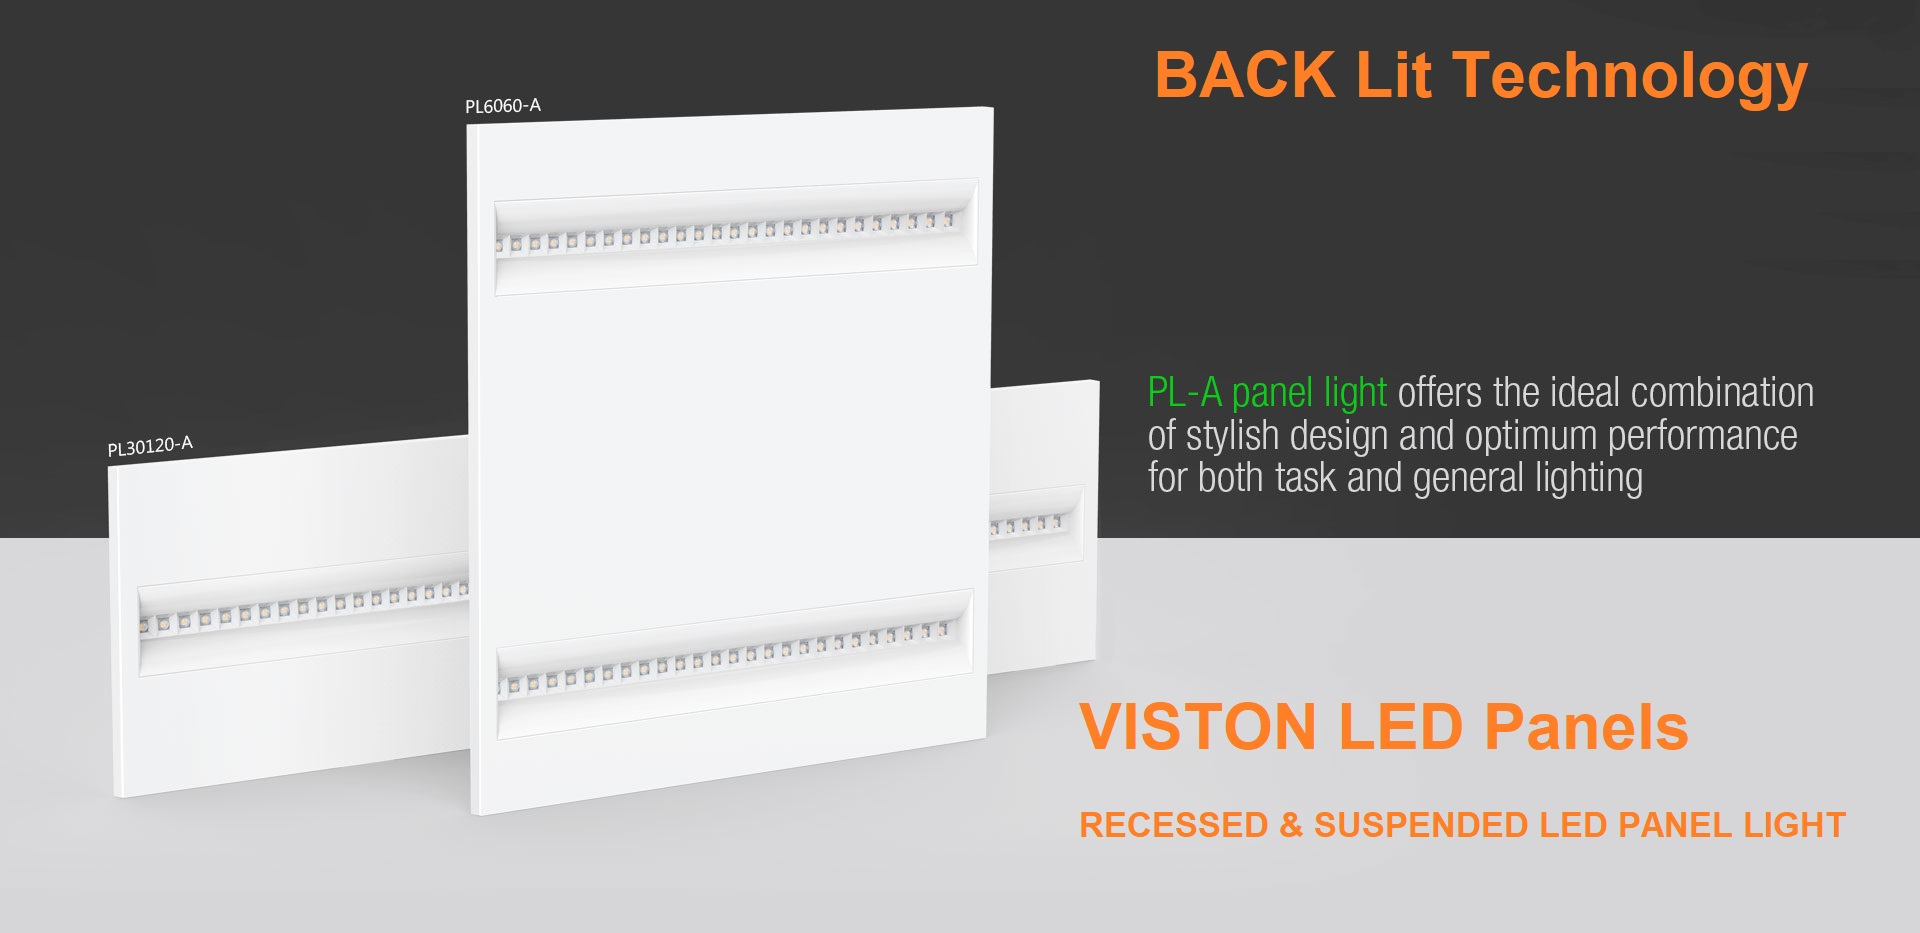 https://www.ledison-led-lights.co.uk/media/s_subcategories/library/viston-new-generation-of-back-lit-led-panel-lights.jpg